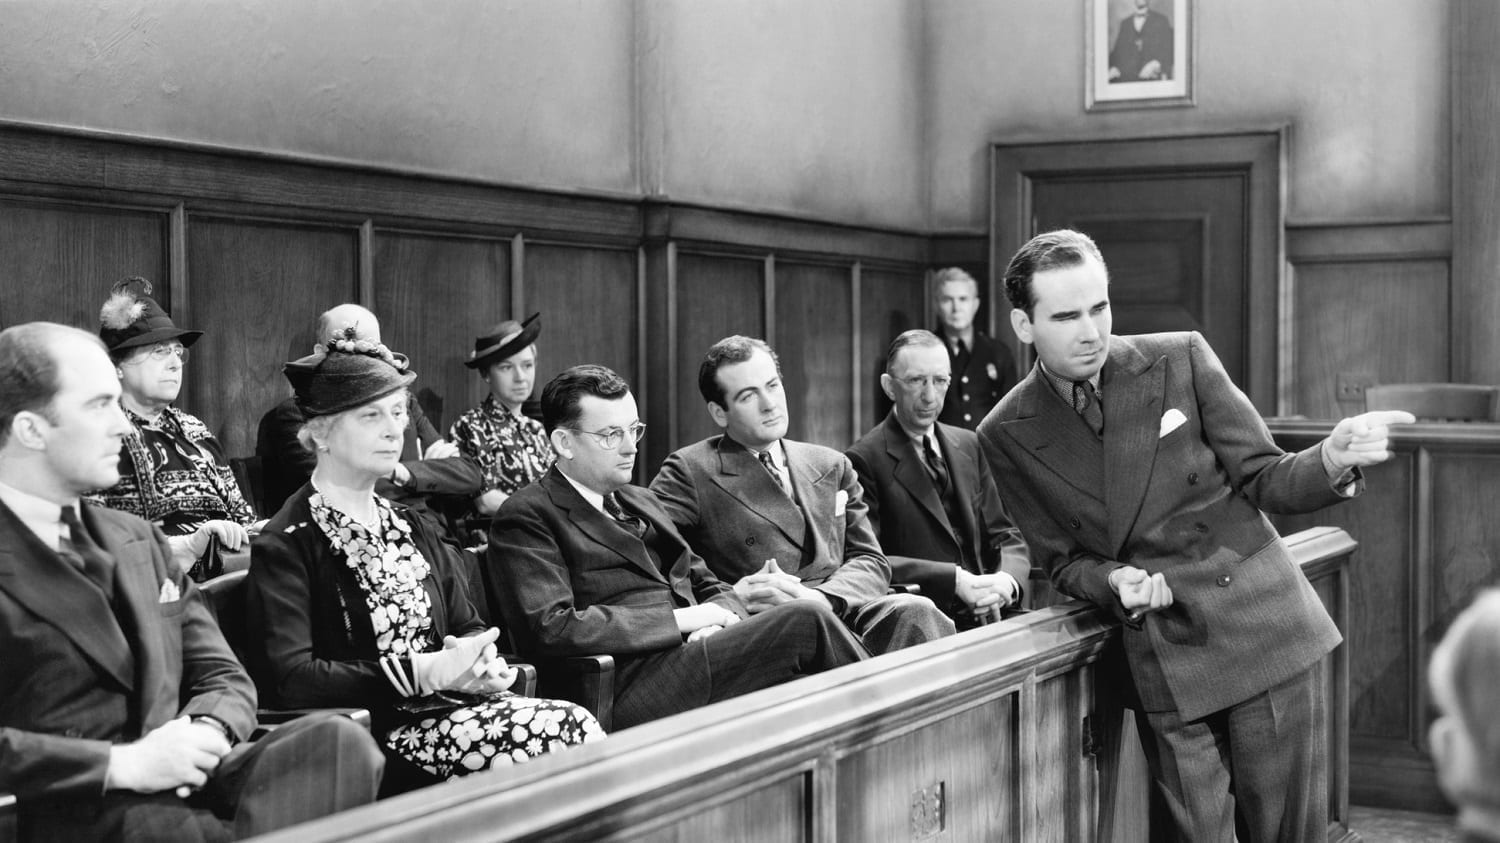 Jury listening to a lawyer's presentation, circa 1940s: Photo 52026511 © Everett Collection Inc. | Dreamstime.com